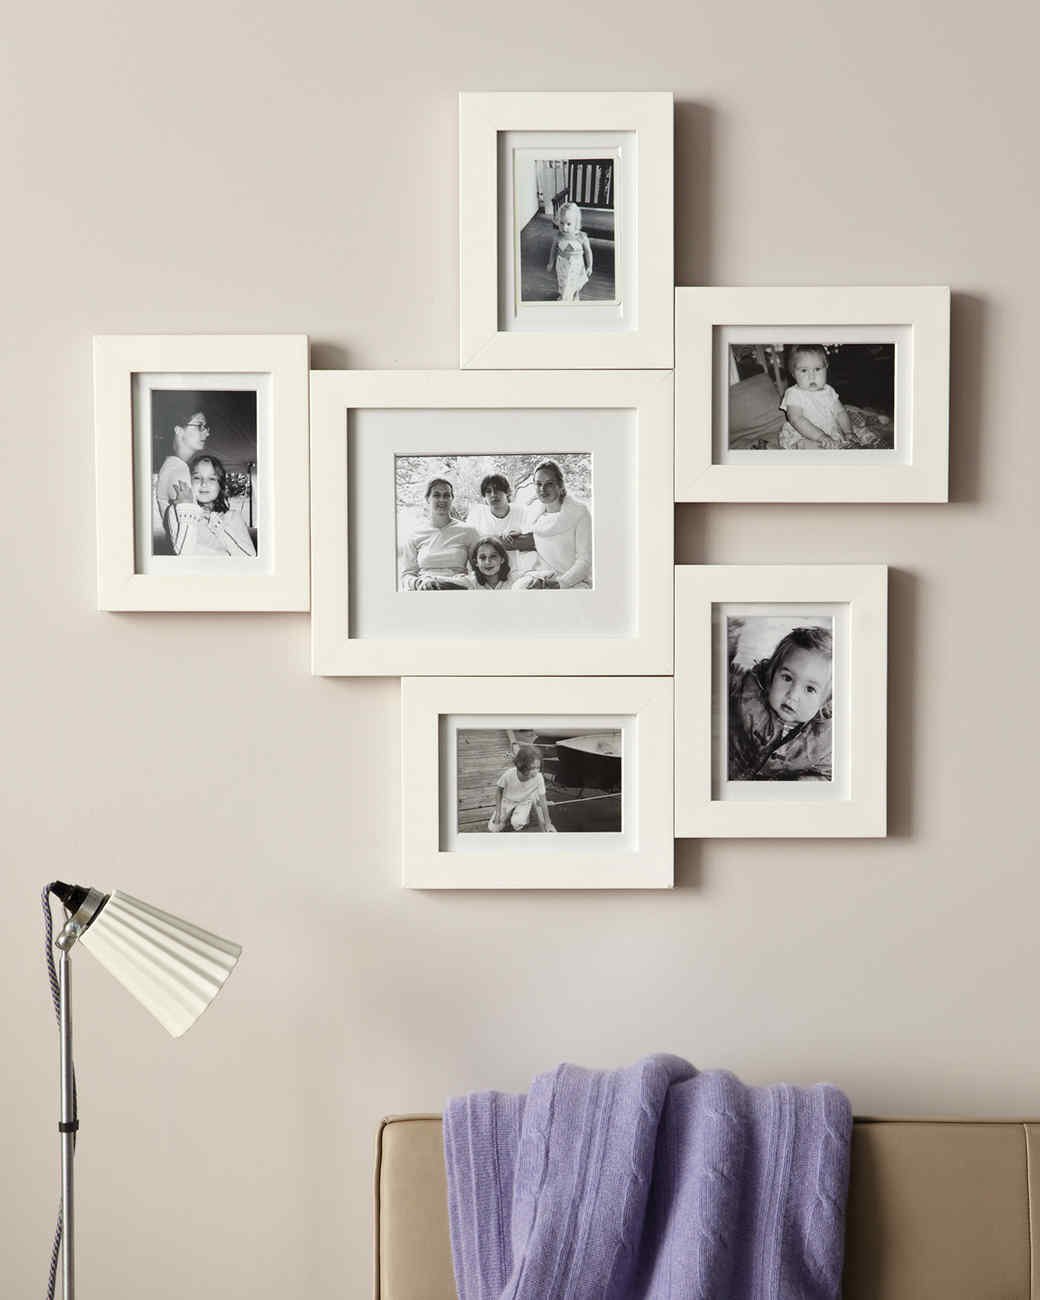 Photo Framing Ideas Part - 19: Well Connected